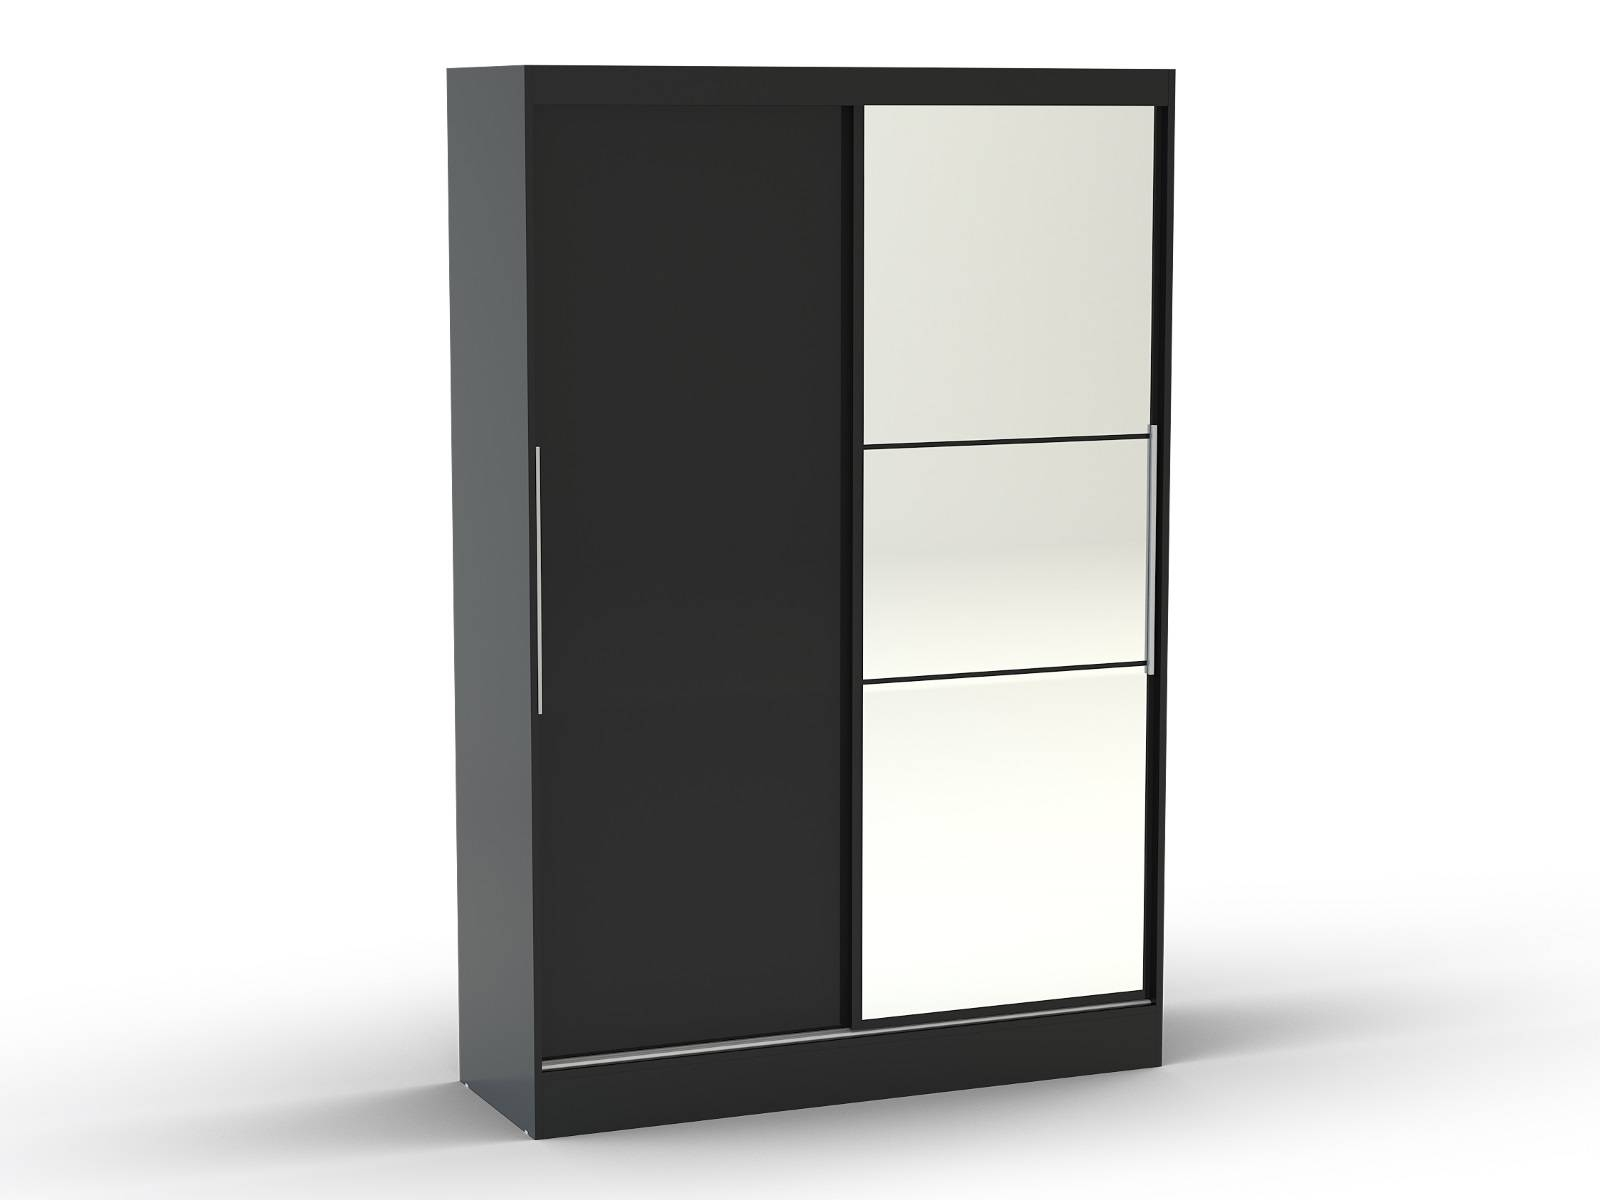 Lucerne Sliding Wardrobe With Mirror (Black) | All Ranges pertaining to Black Wardrobes (Image 5 of 15)